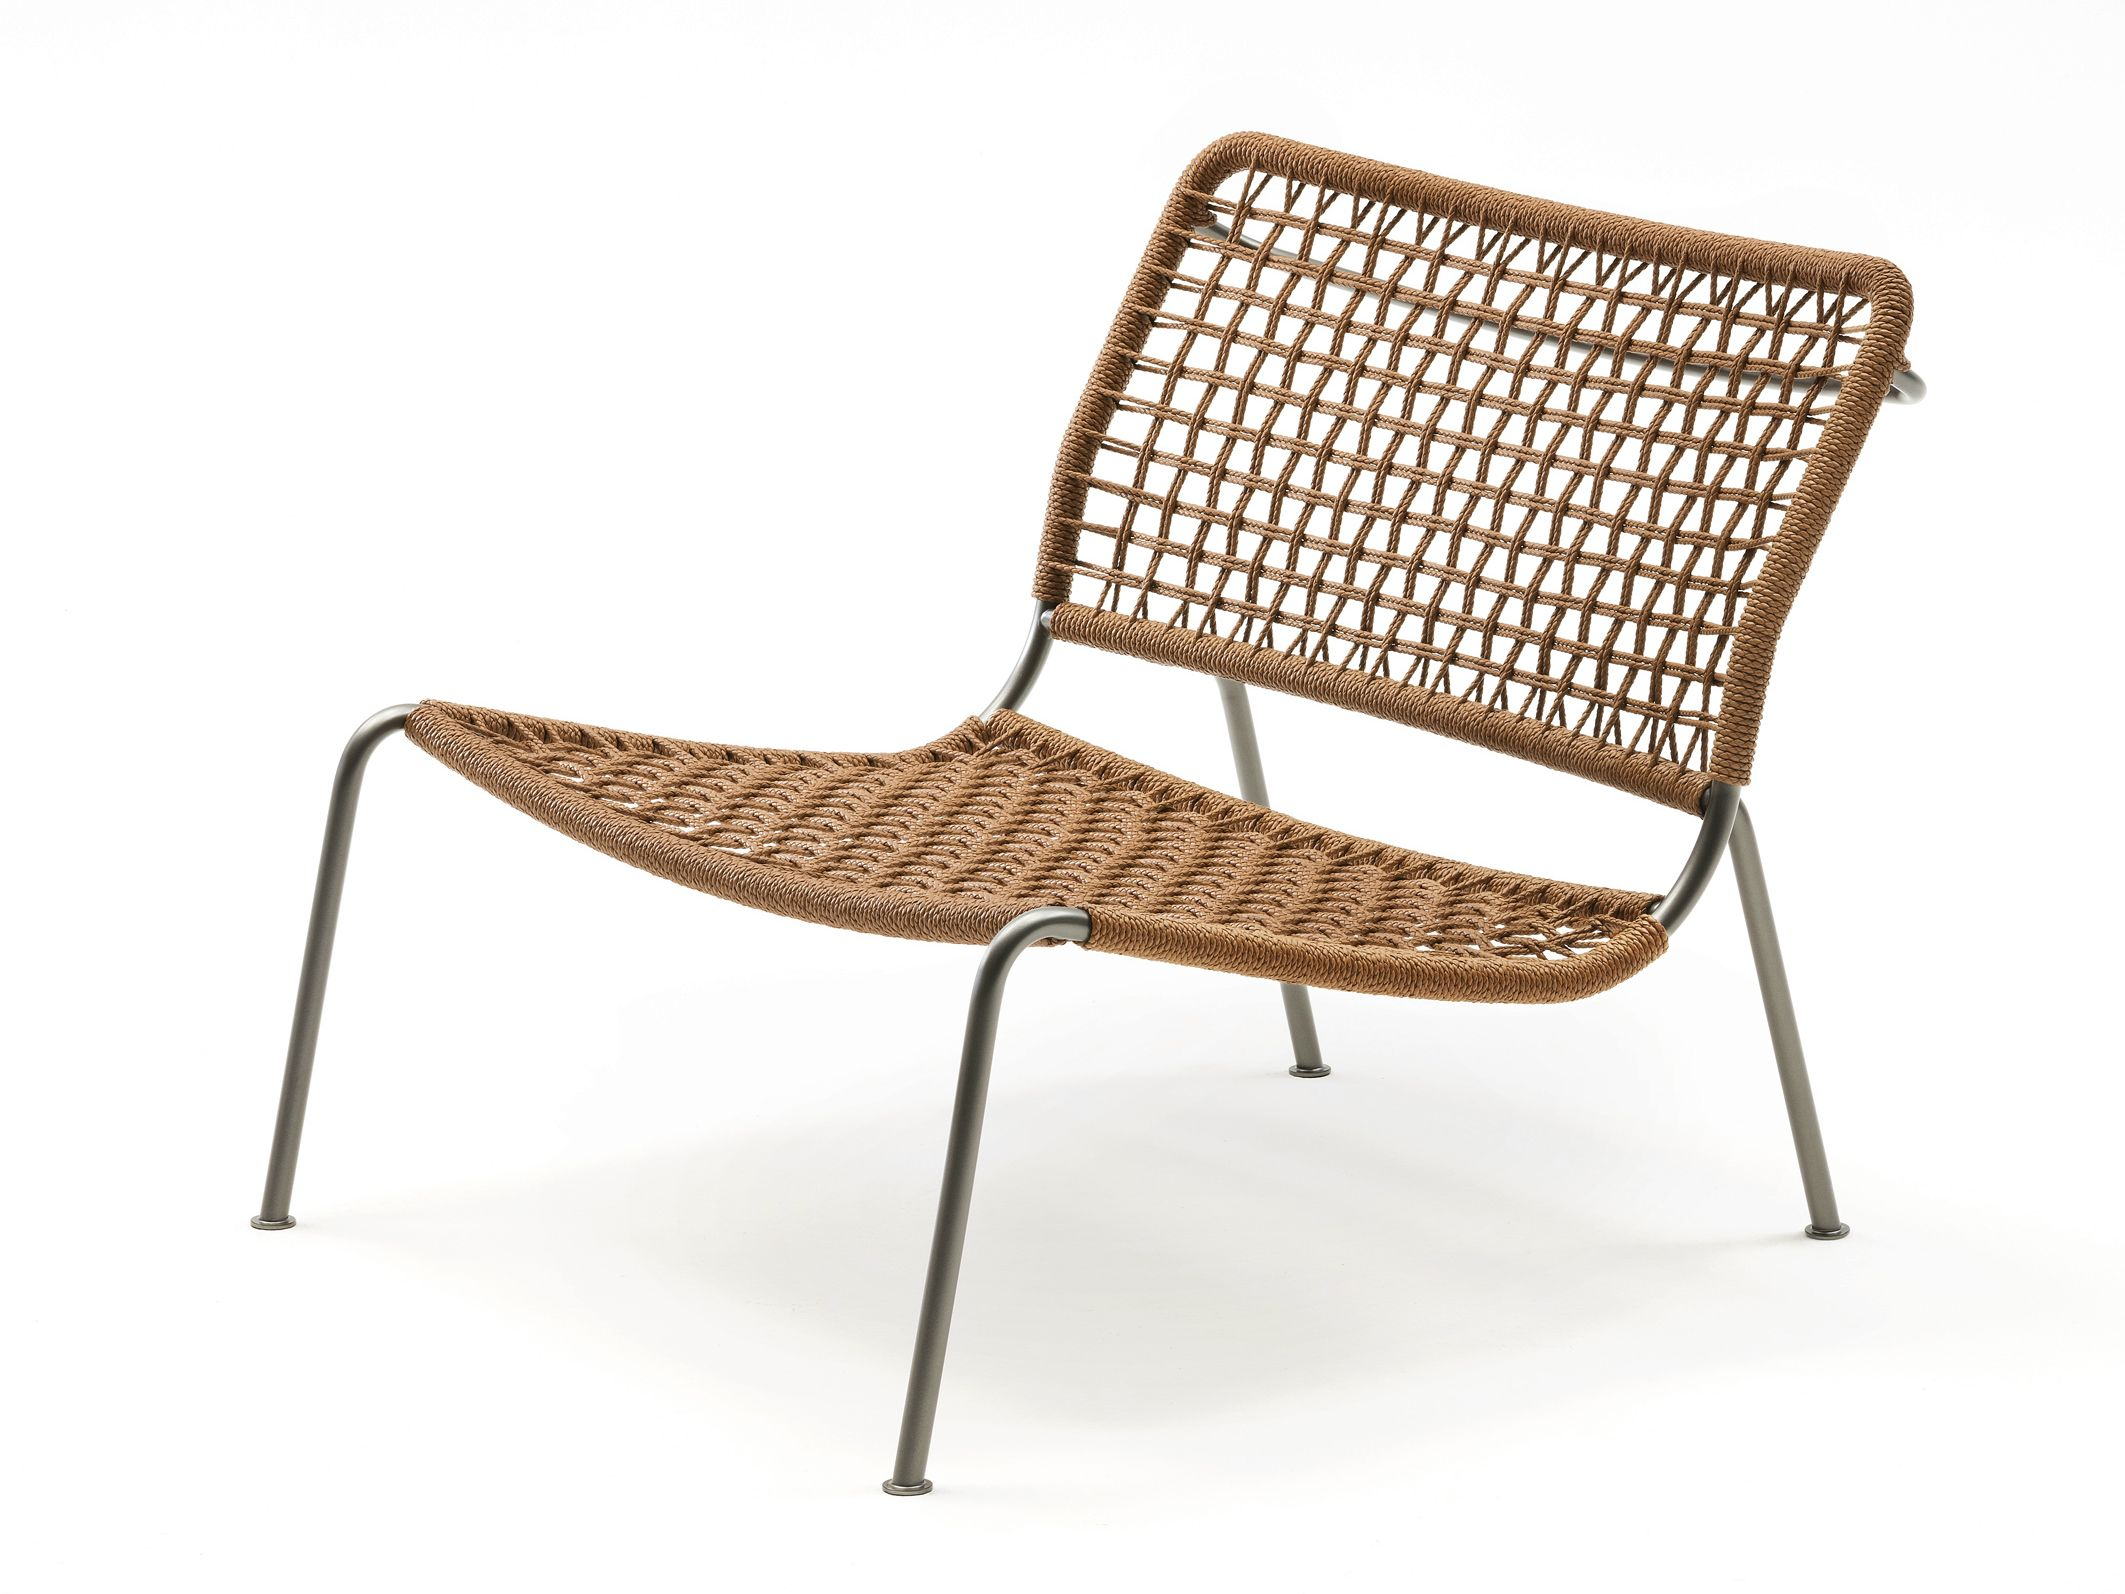 FROG Leather Easy Chair By Living Divani Design Piero Lissoni